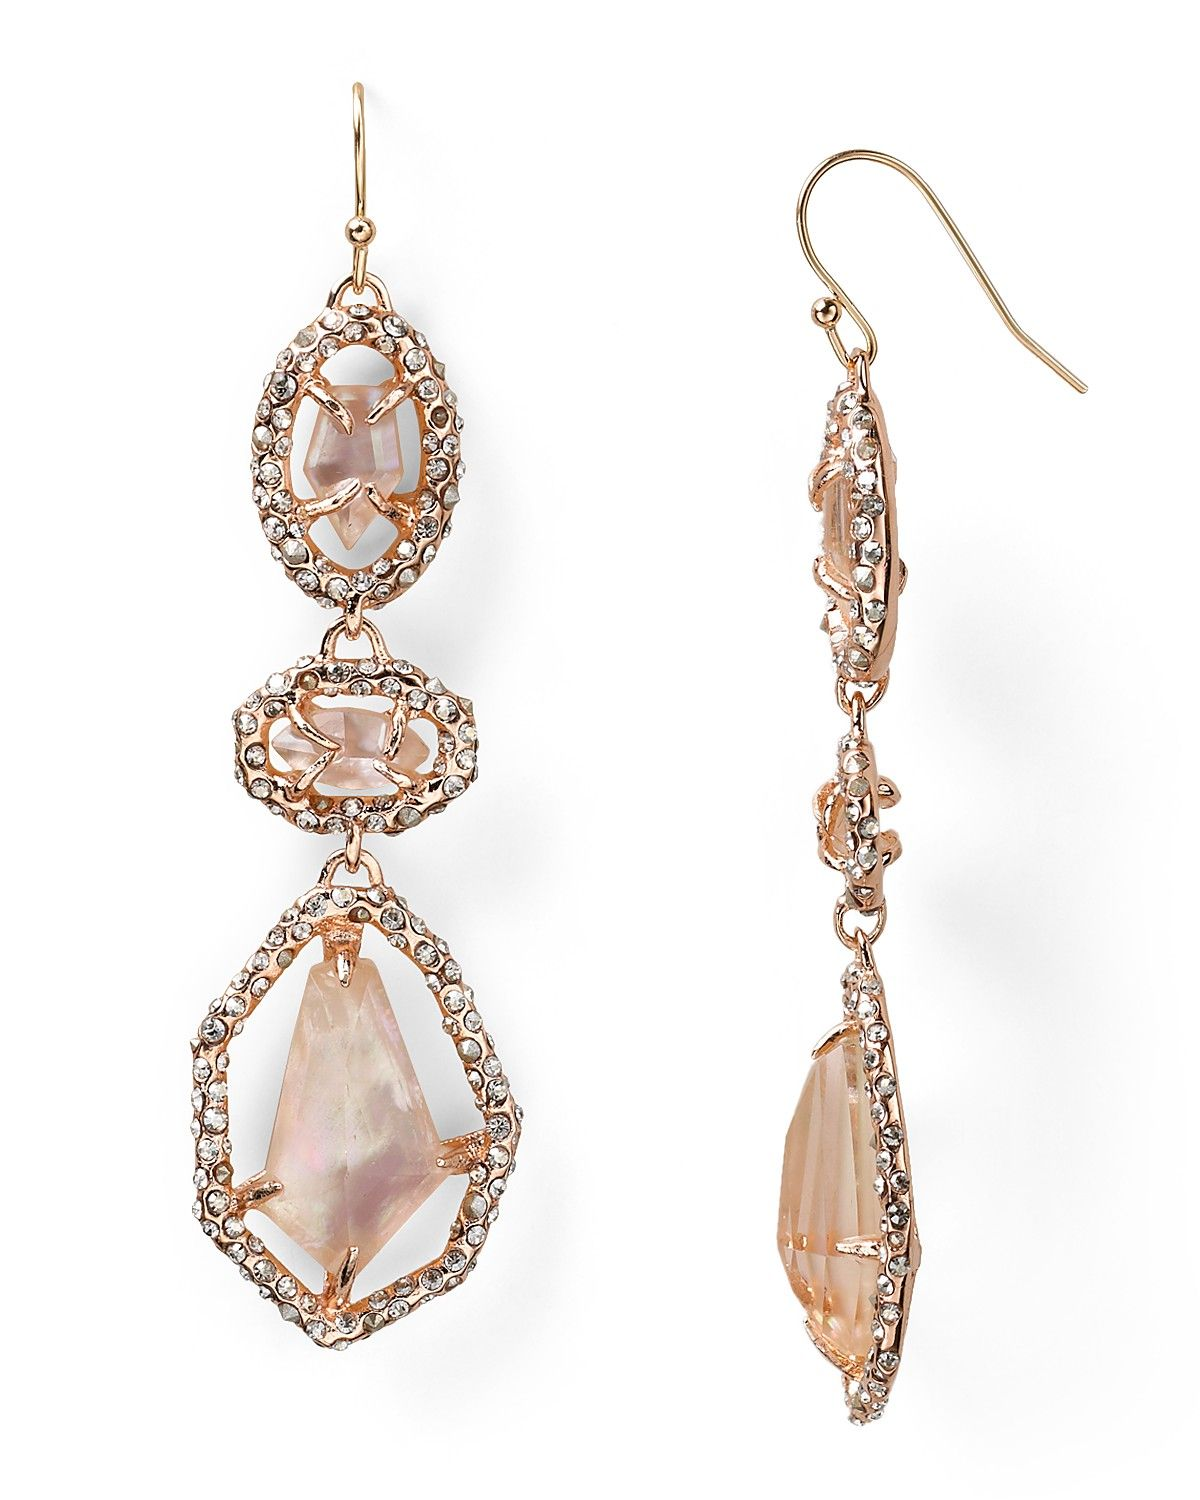 Alexis Bittar Bel Air Rose Gold Synthetic Peach Doublet